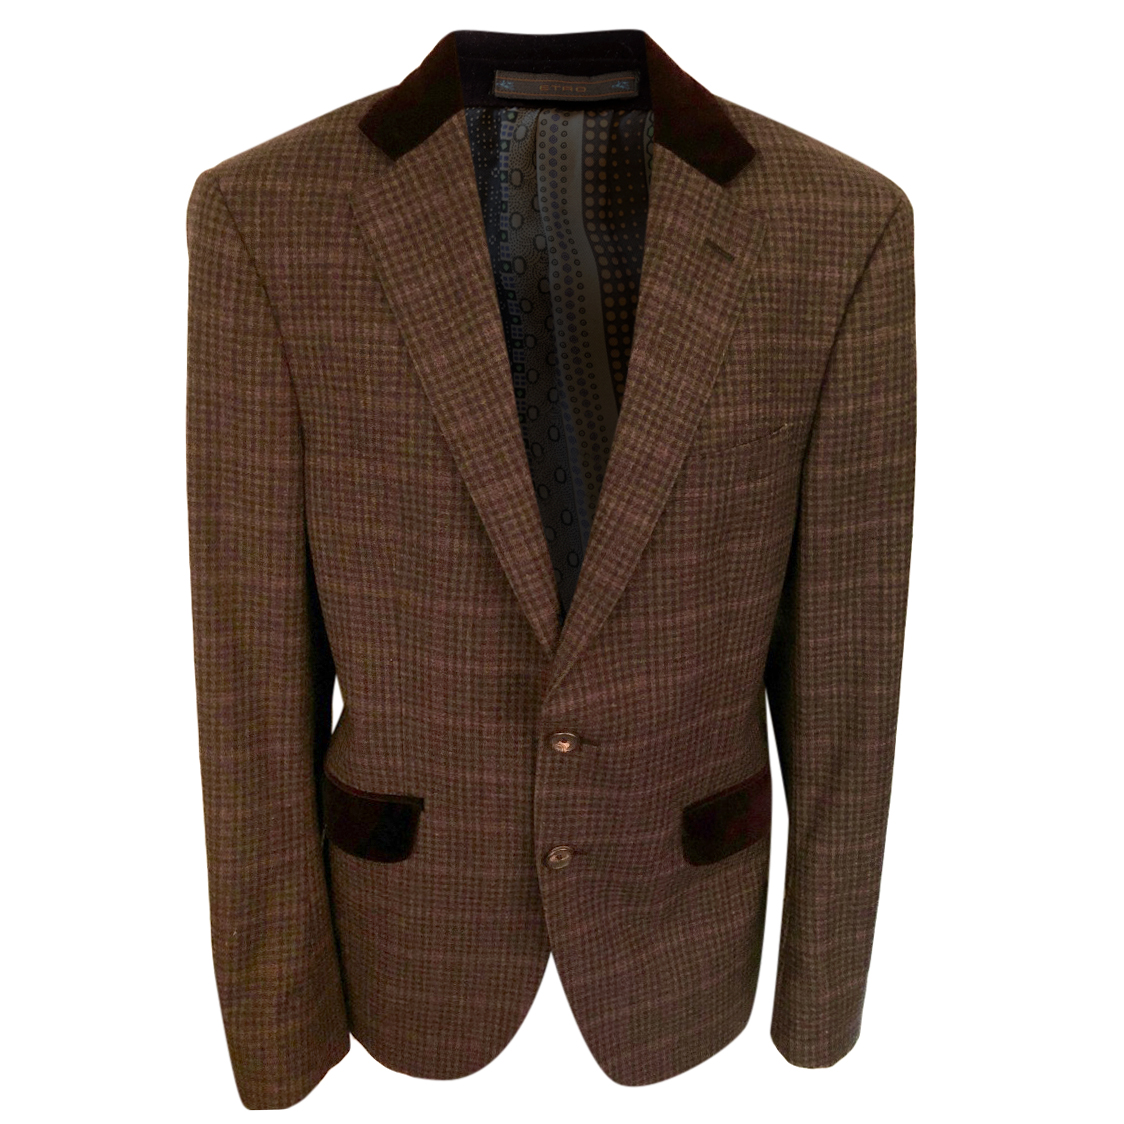 Etro Wool & Cashmere Mens Check Tailored Jacket